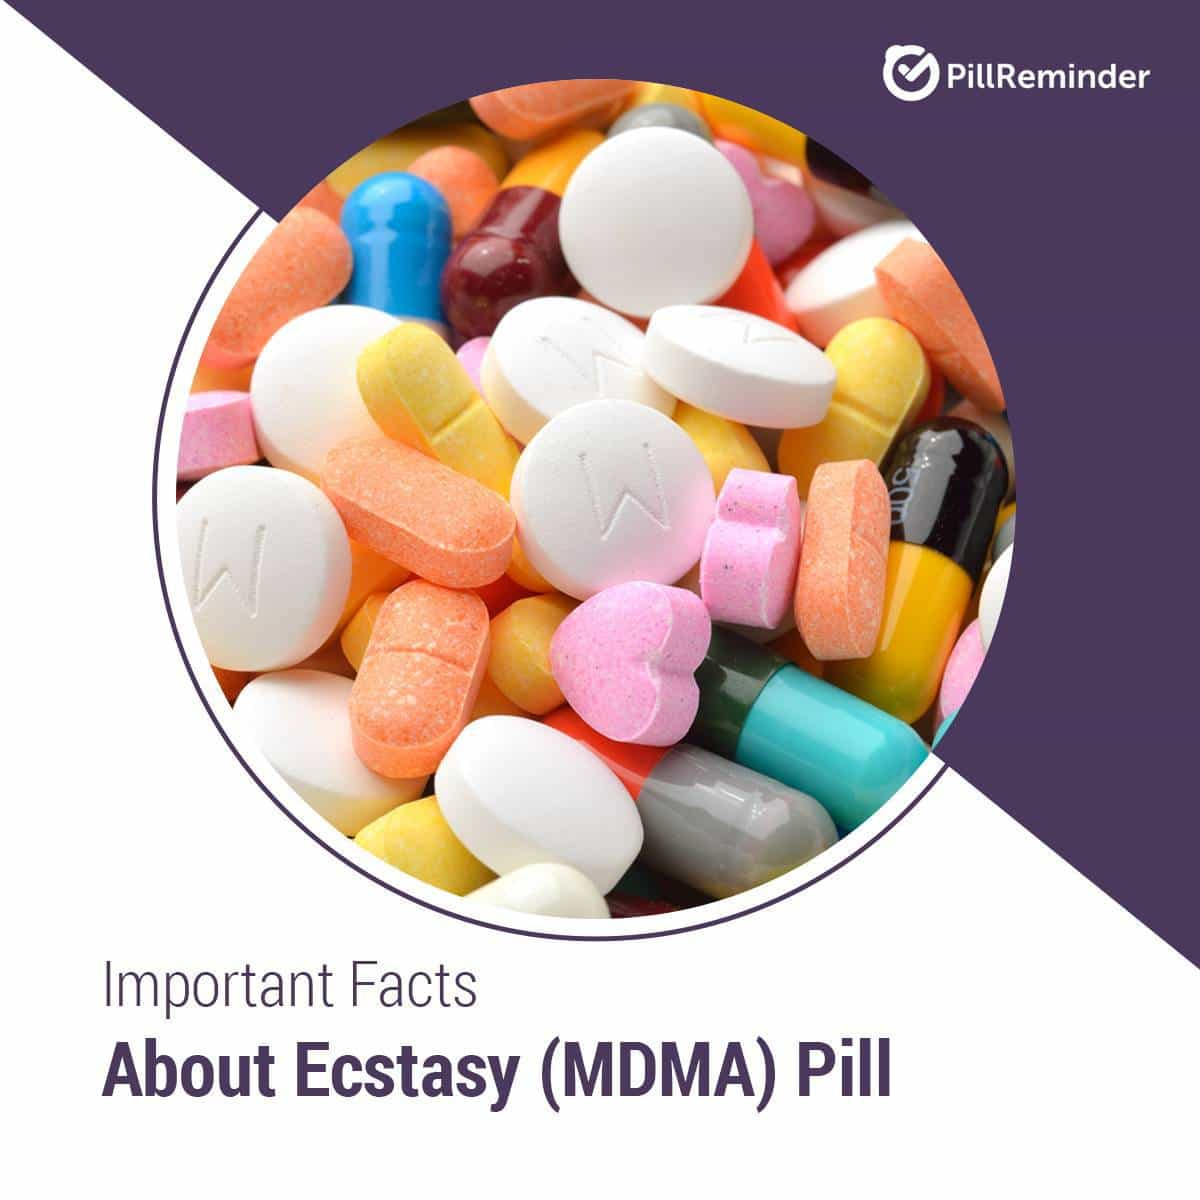 Important Facts About Ecstasy (MDMA) Pill